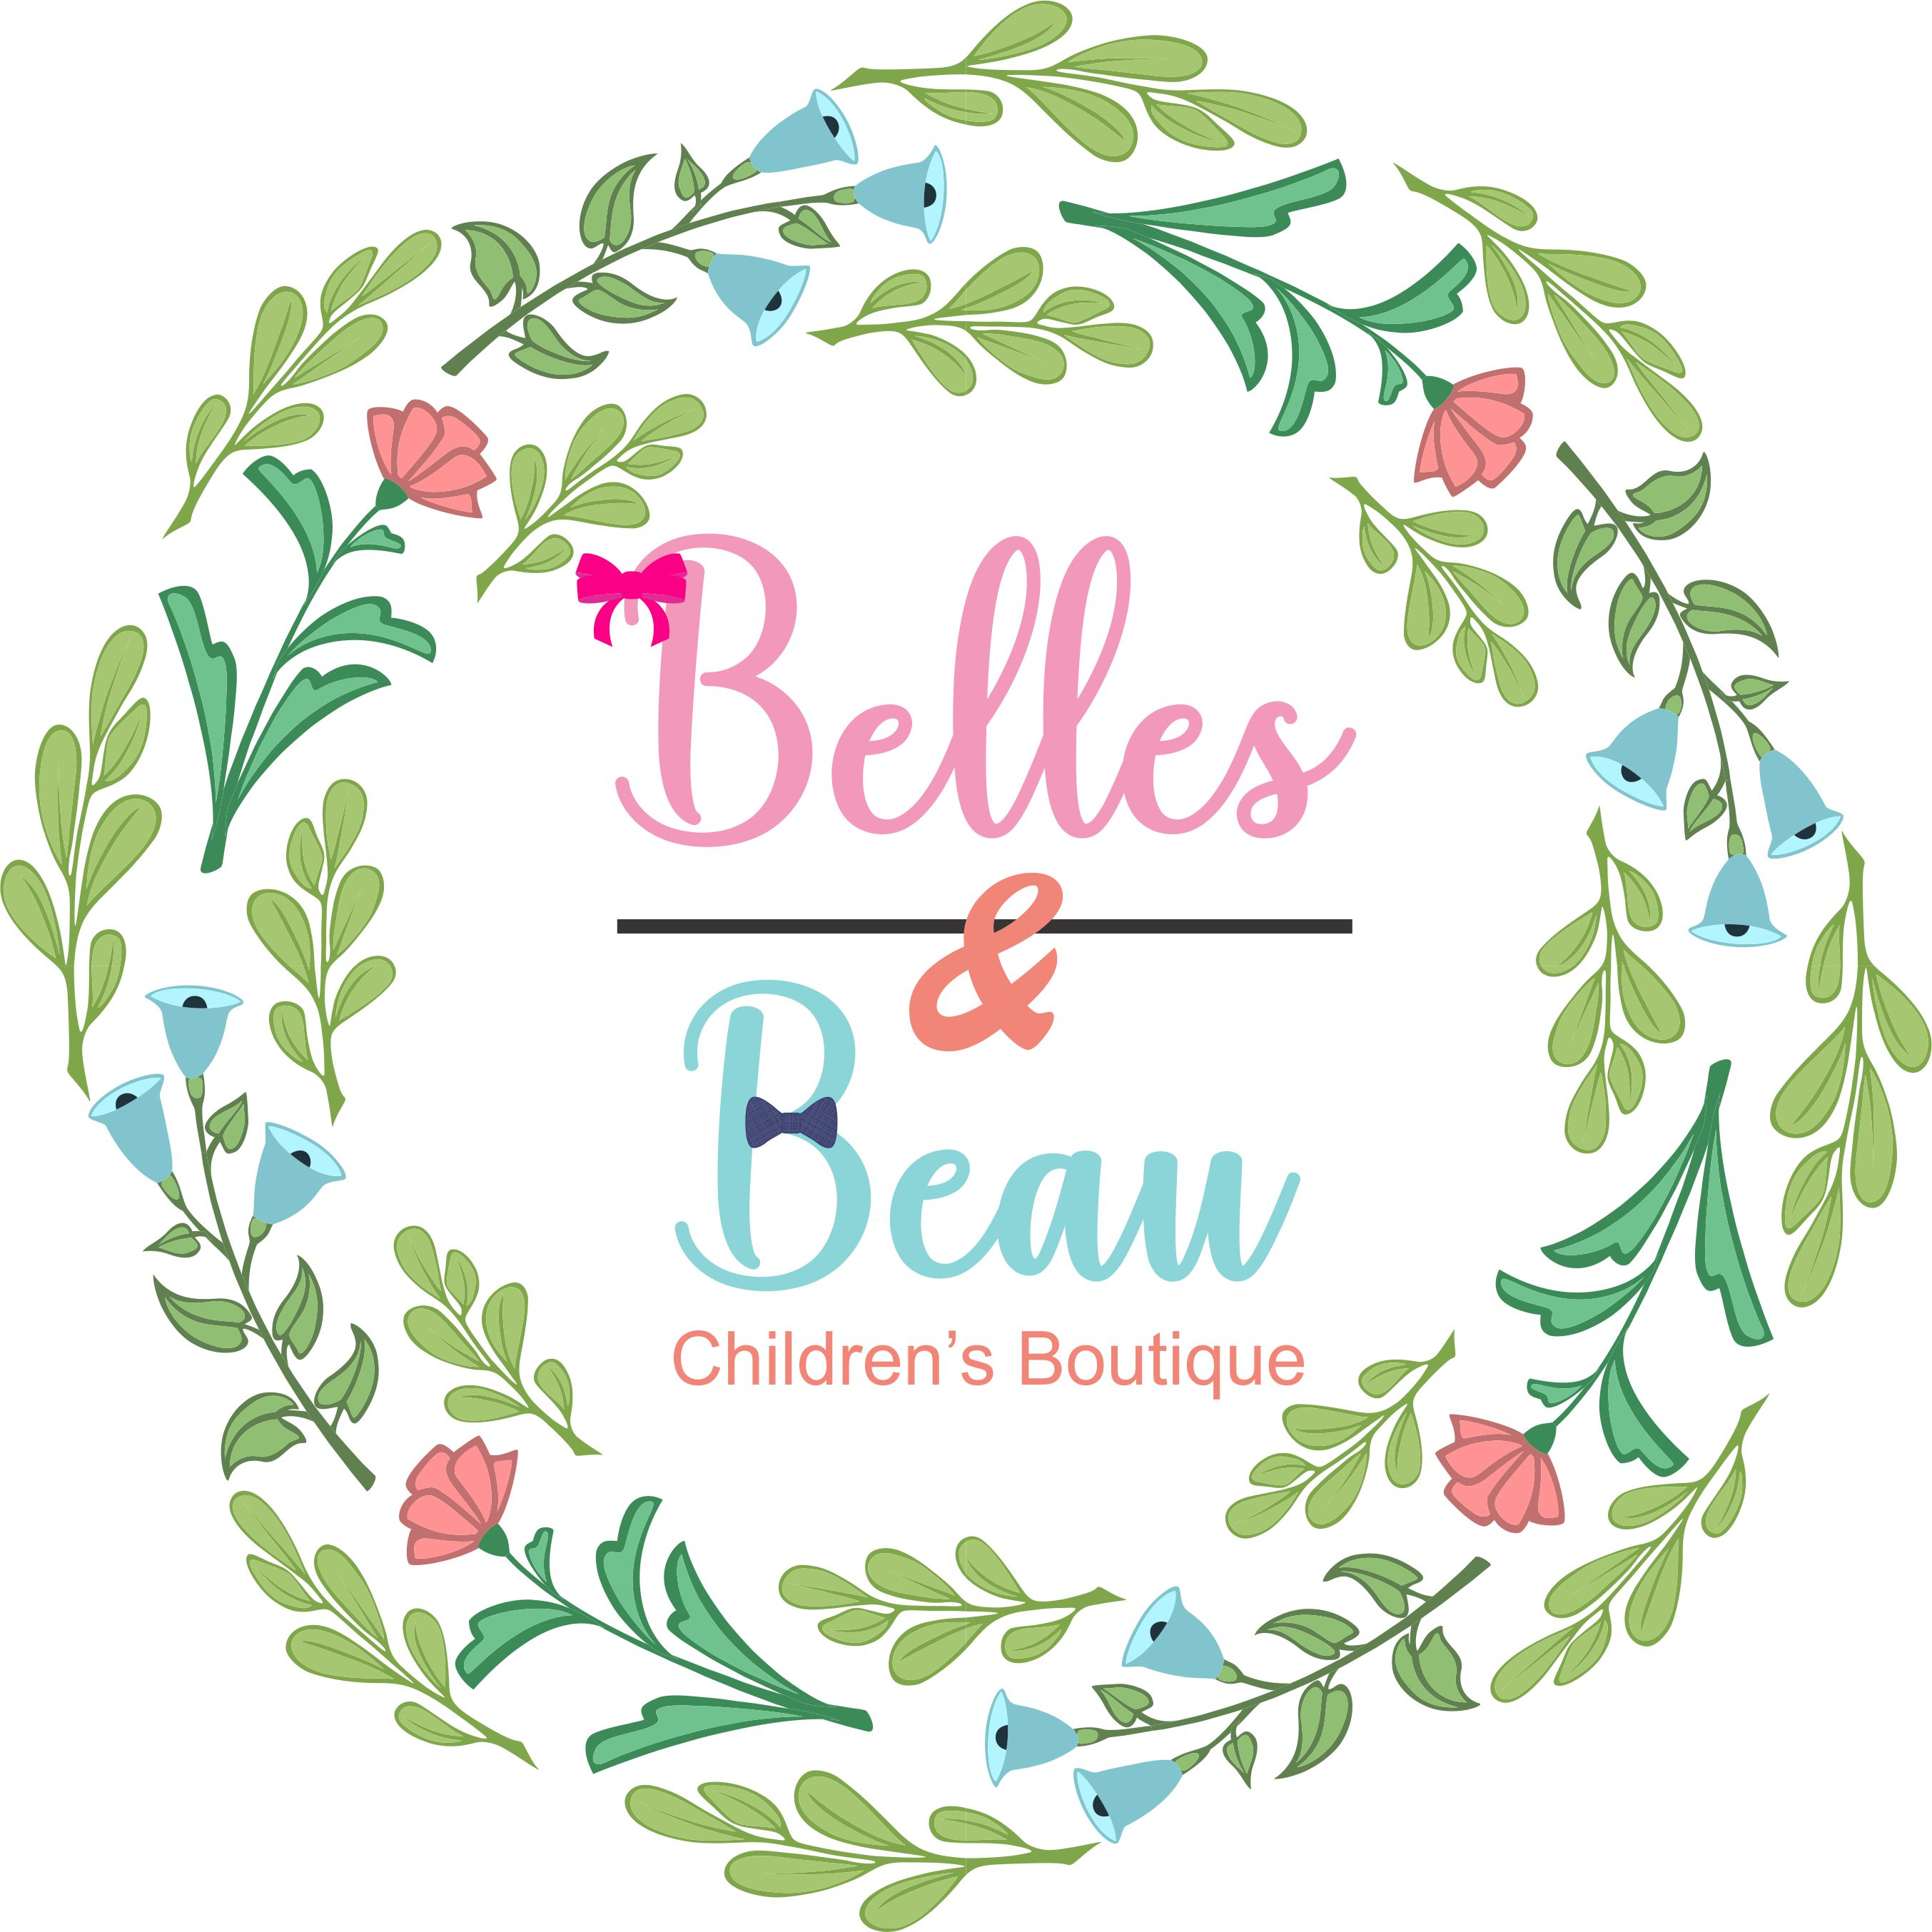 Belles and Beaus